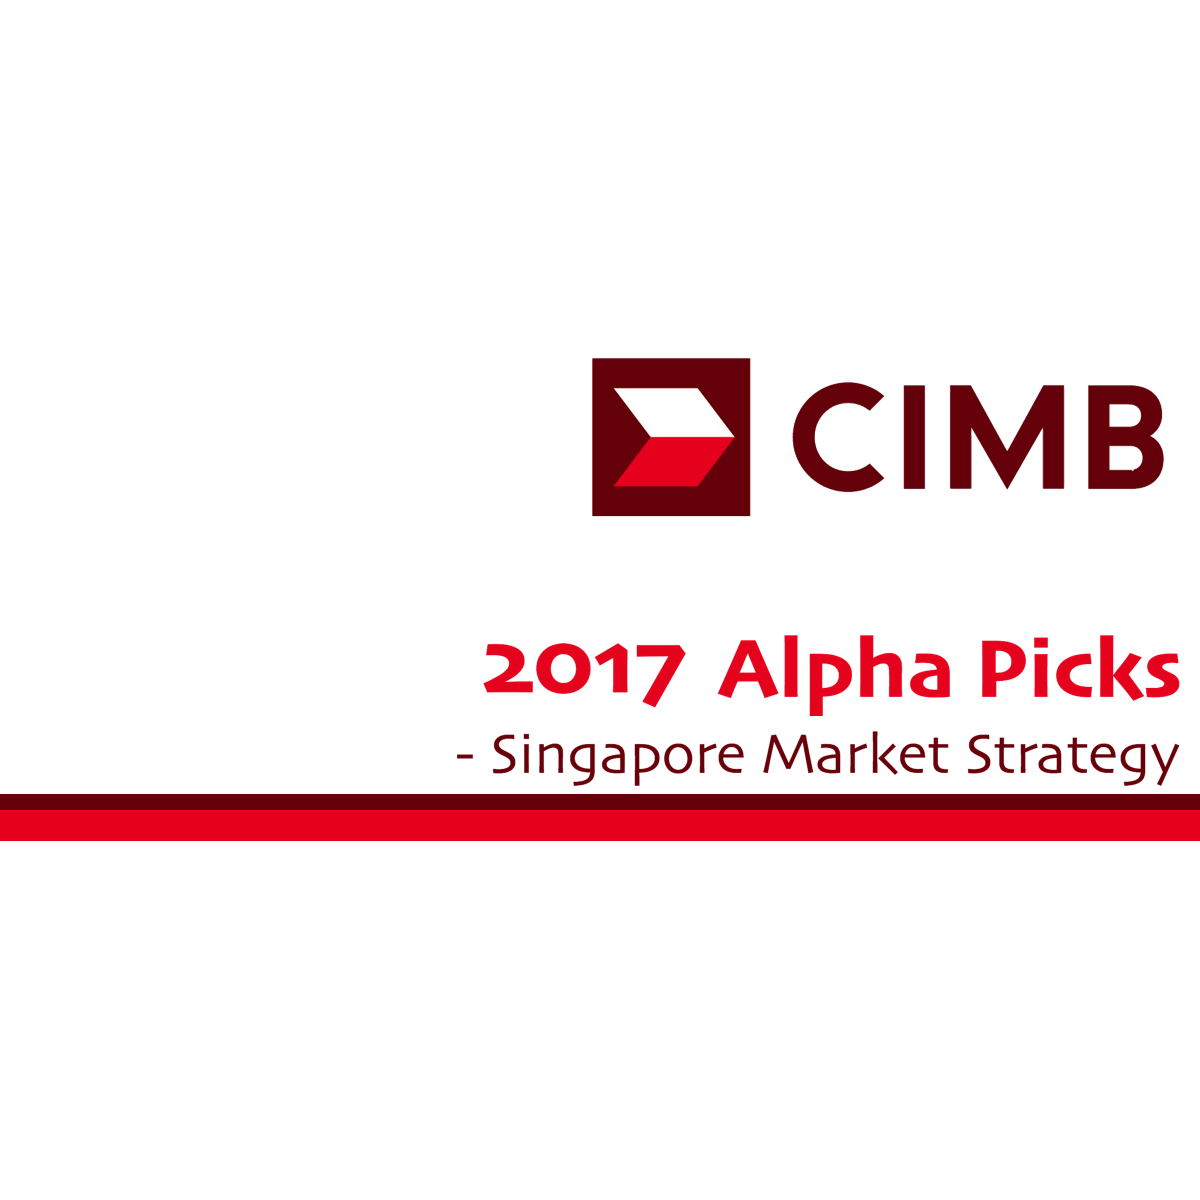 Singapore Strategy - CIMB Research 2016-12-05: Alpha Picks For 2017